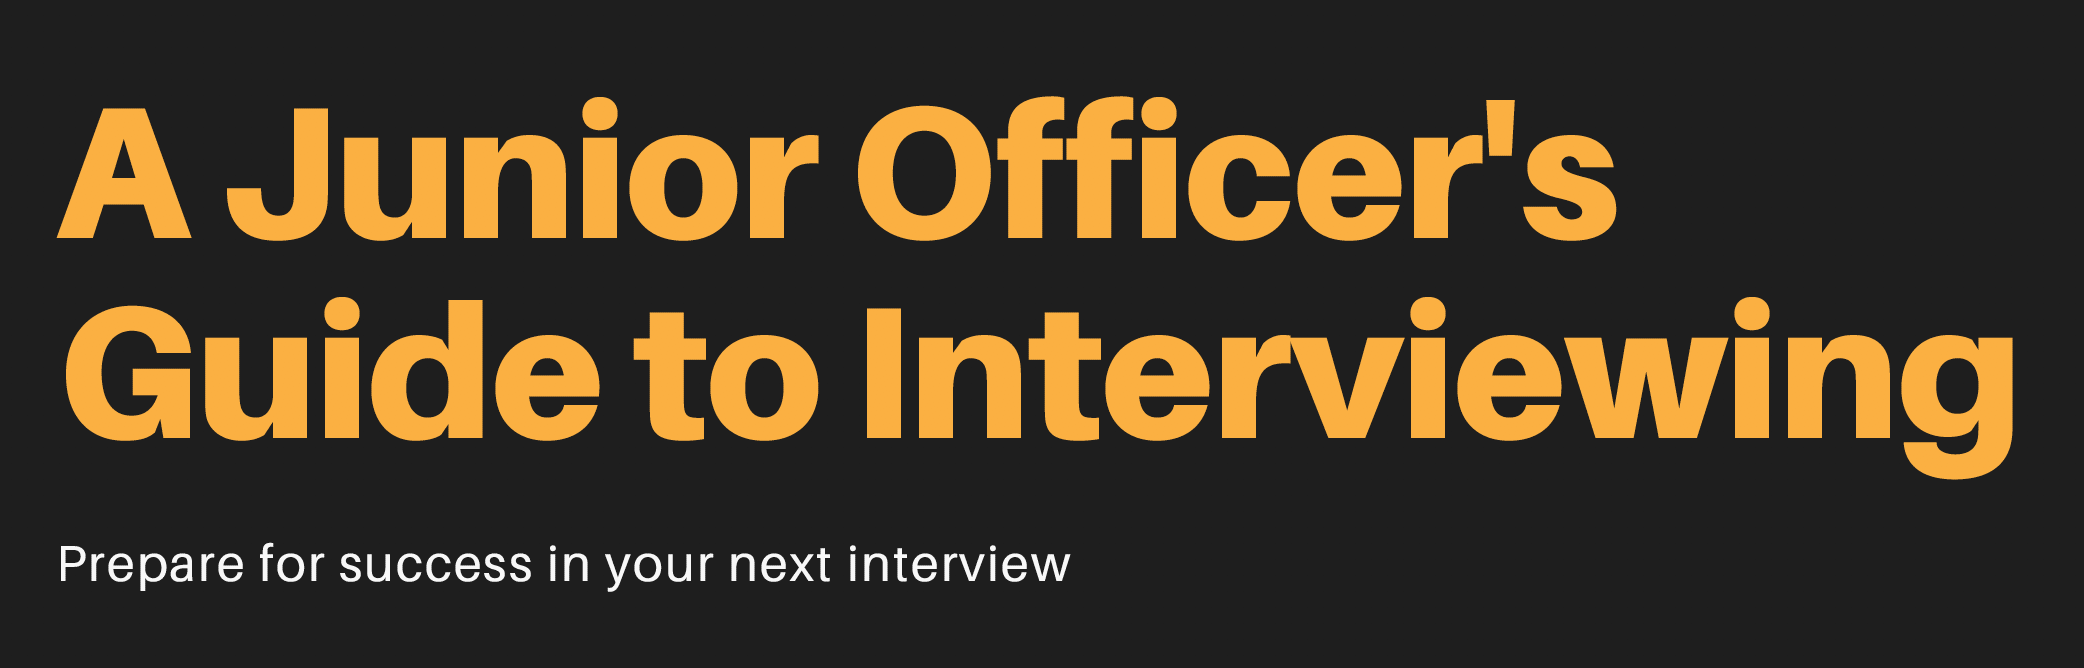 jo-guide-to-interviewing-thumbnail